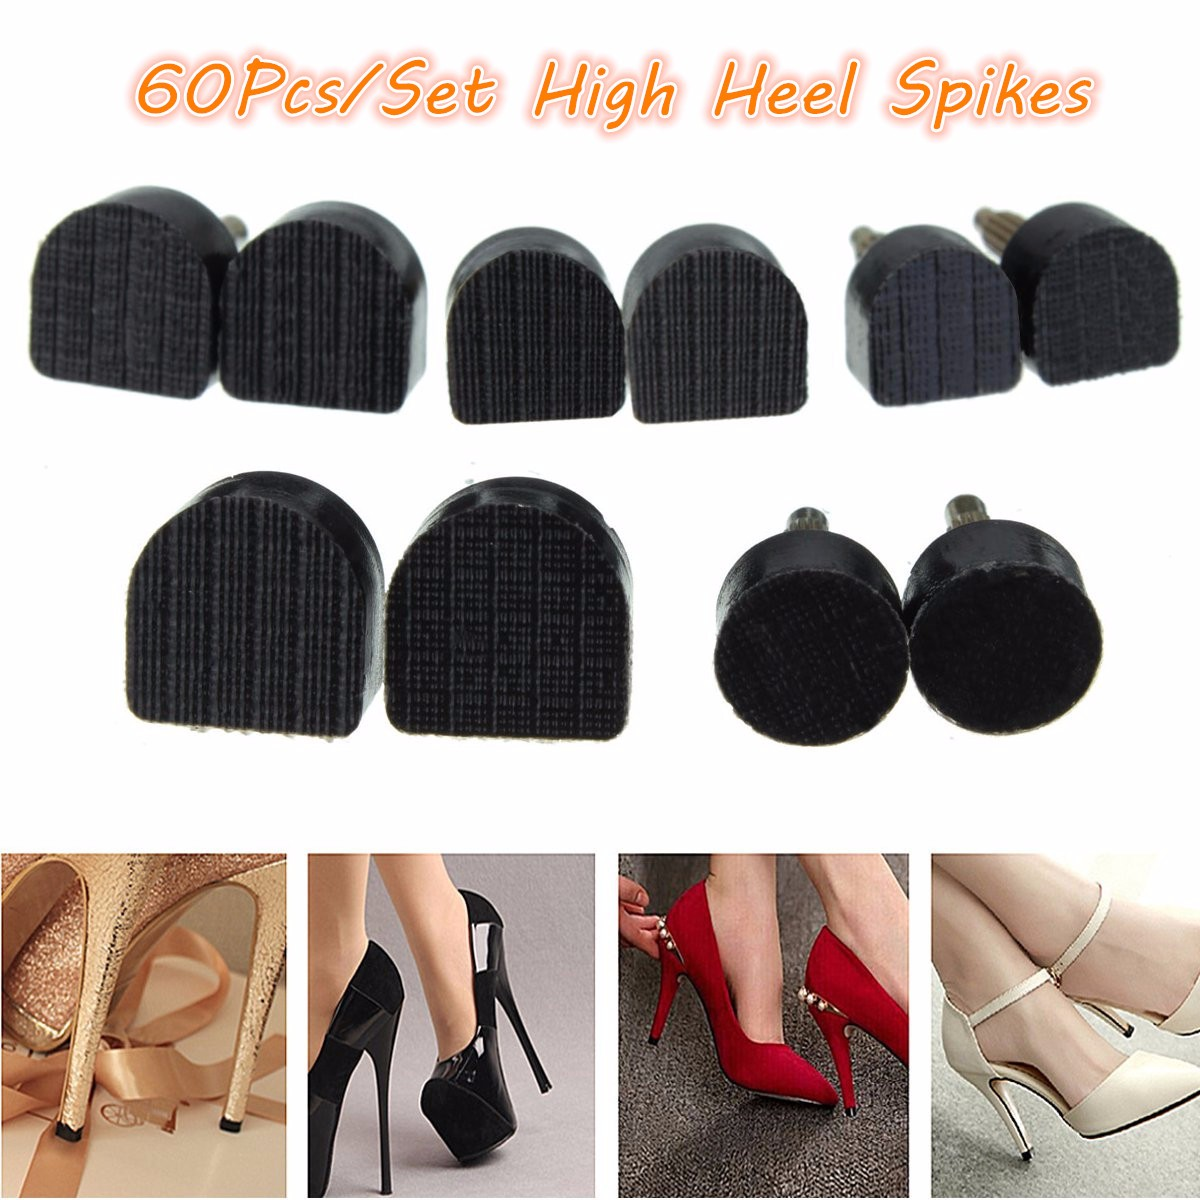 60Pcs/Set 5-Sizes High Heel Tips Spikes Taps Dowel Lifts Replacement Heel Stoppers Protector Lady Stiletto Women Shoe Repair Tip